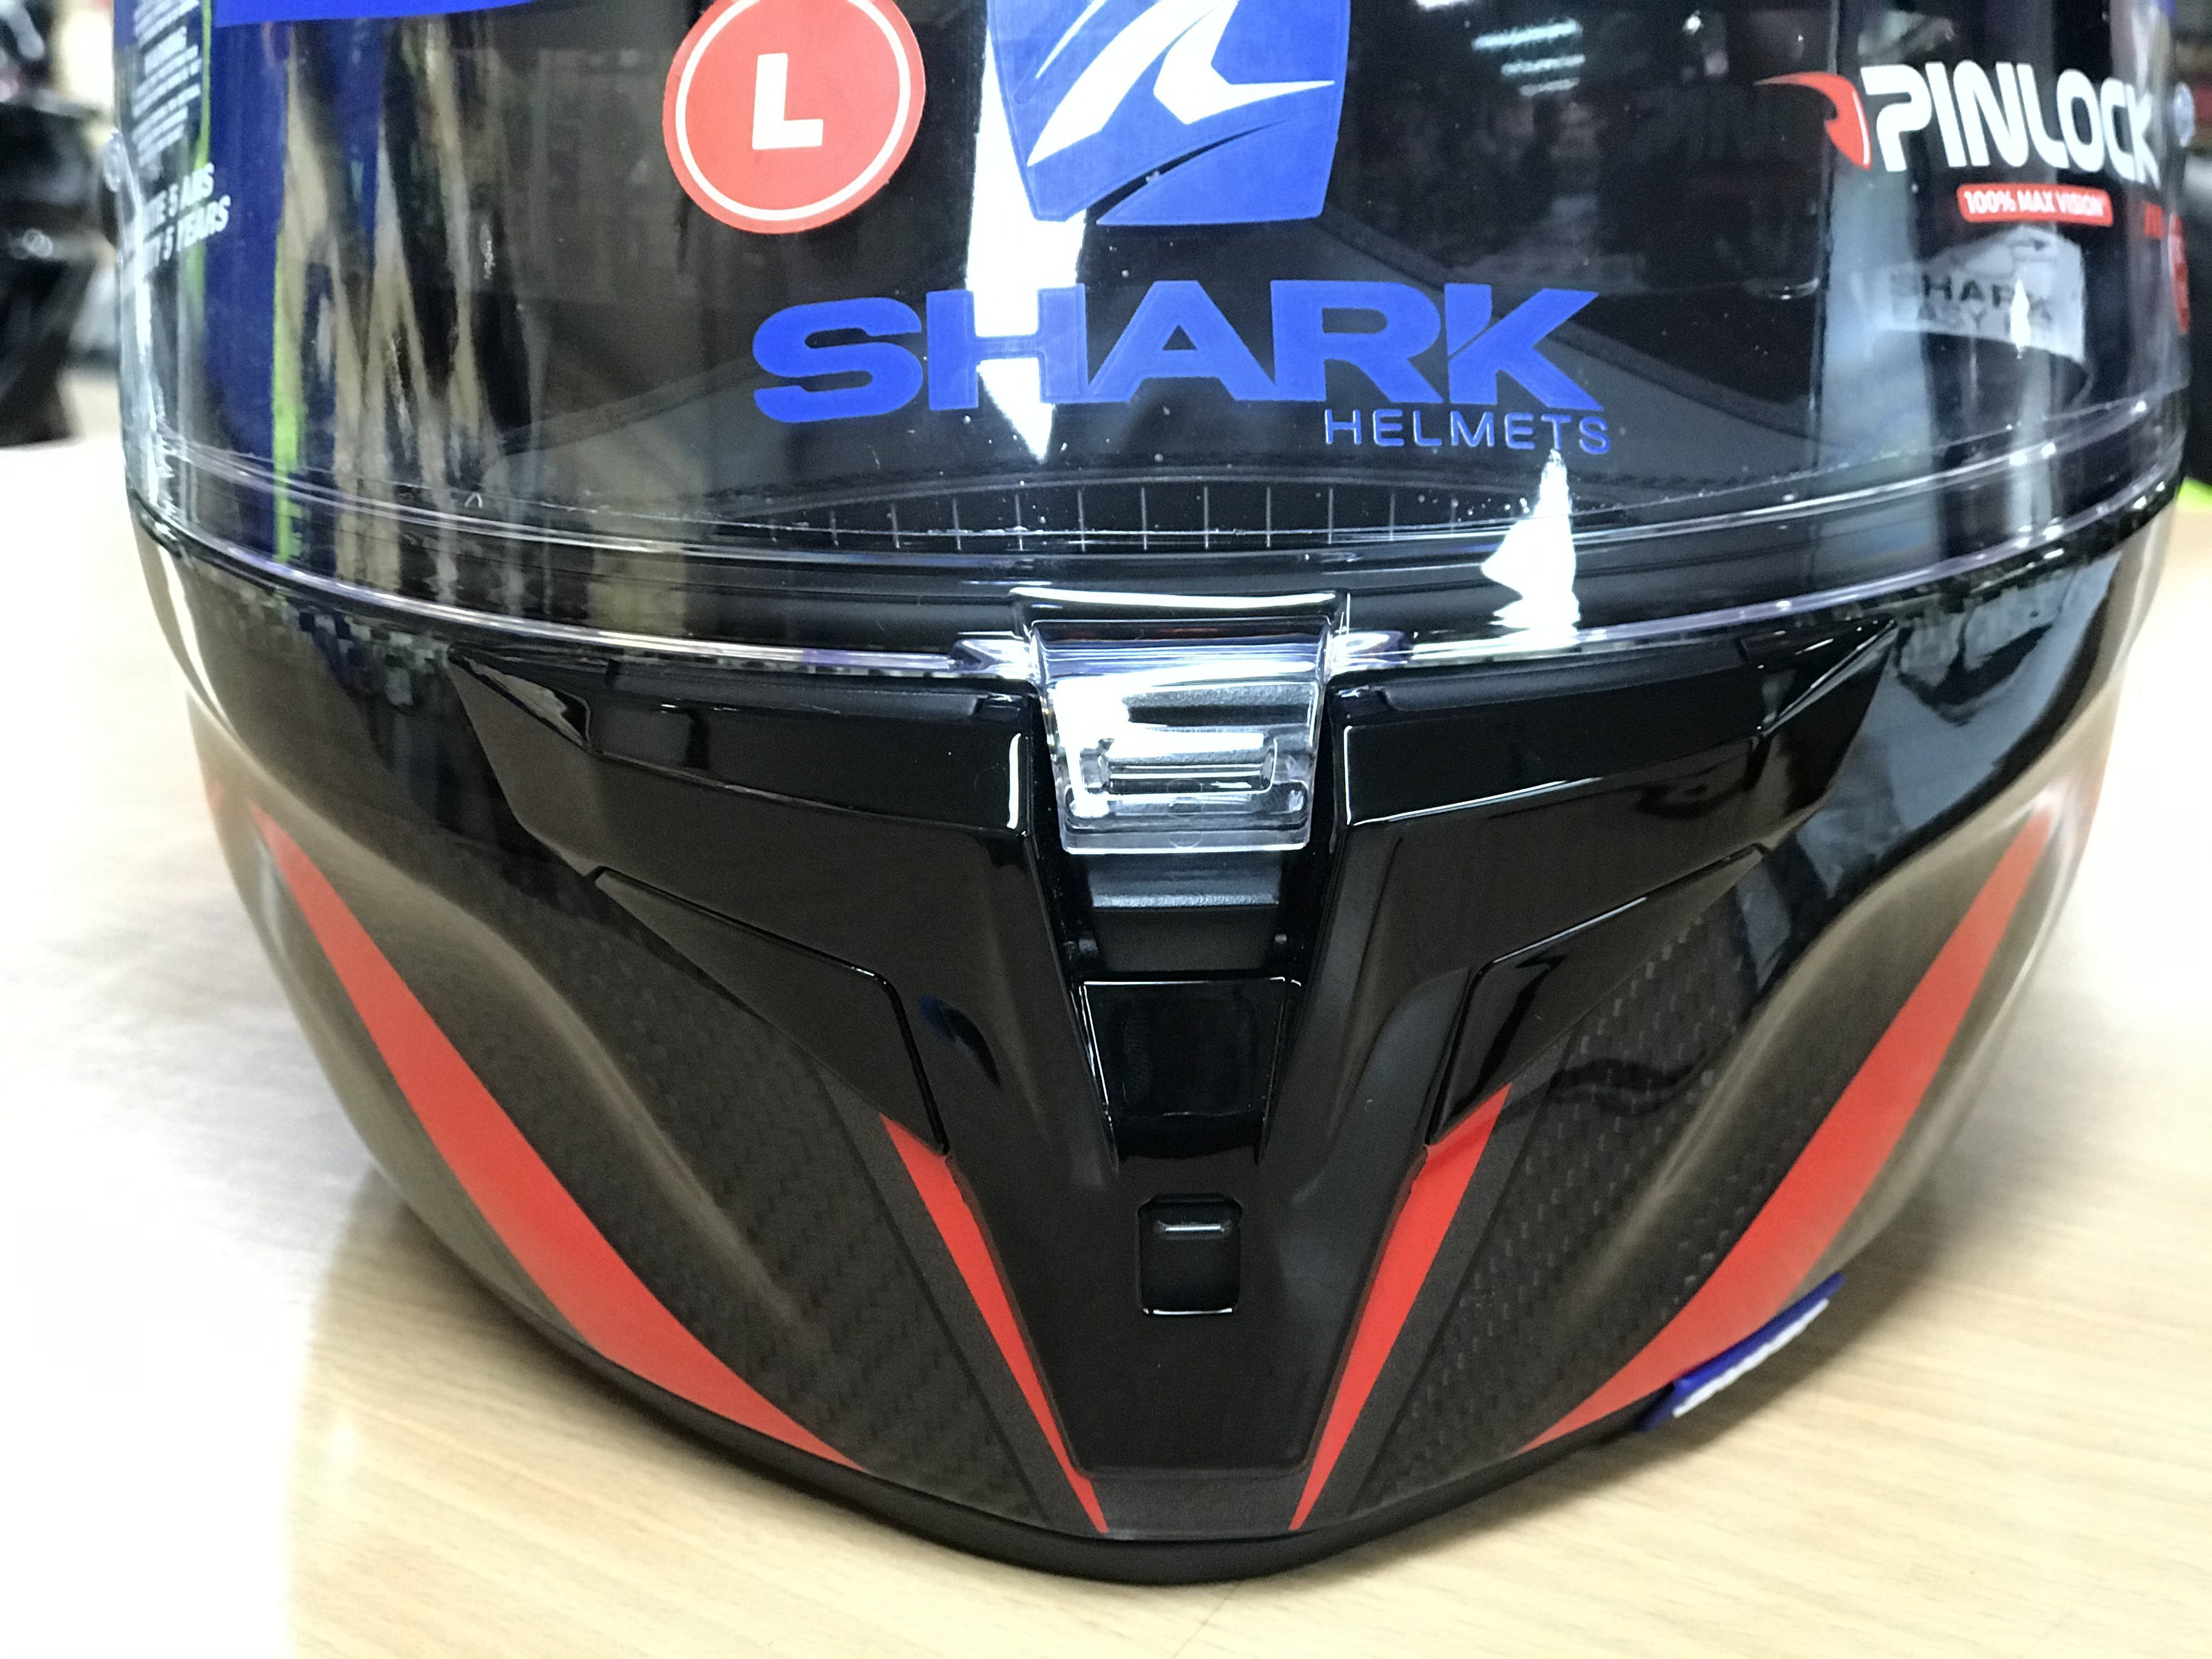 The new front visor lock down system on the Shark Carbon Spartan GT